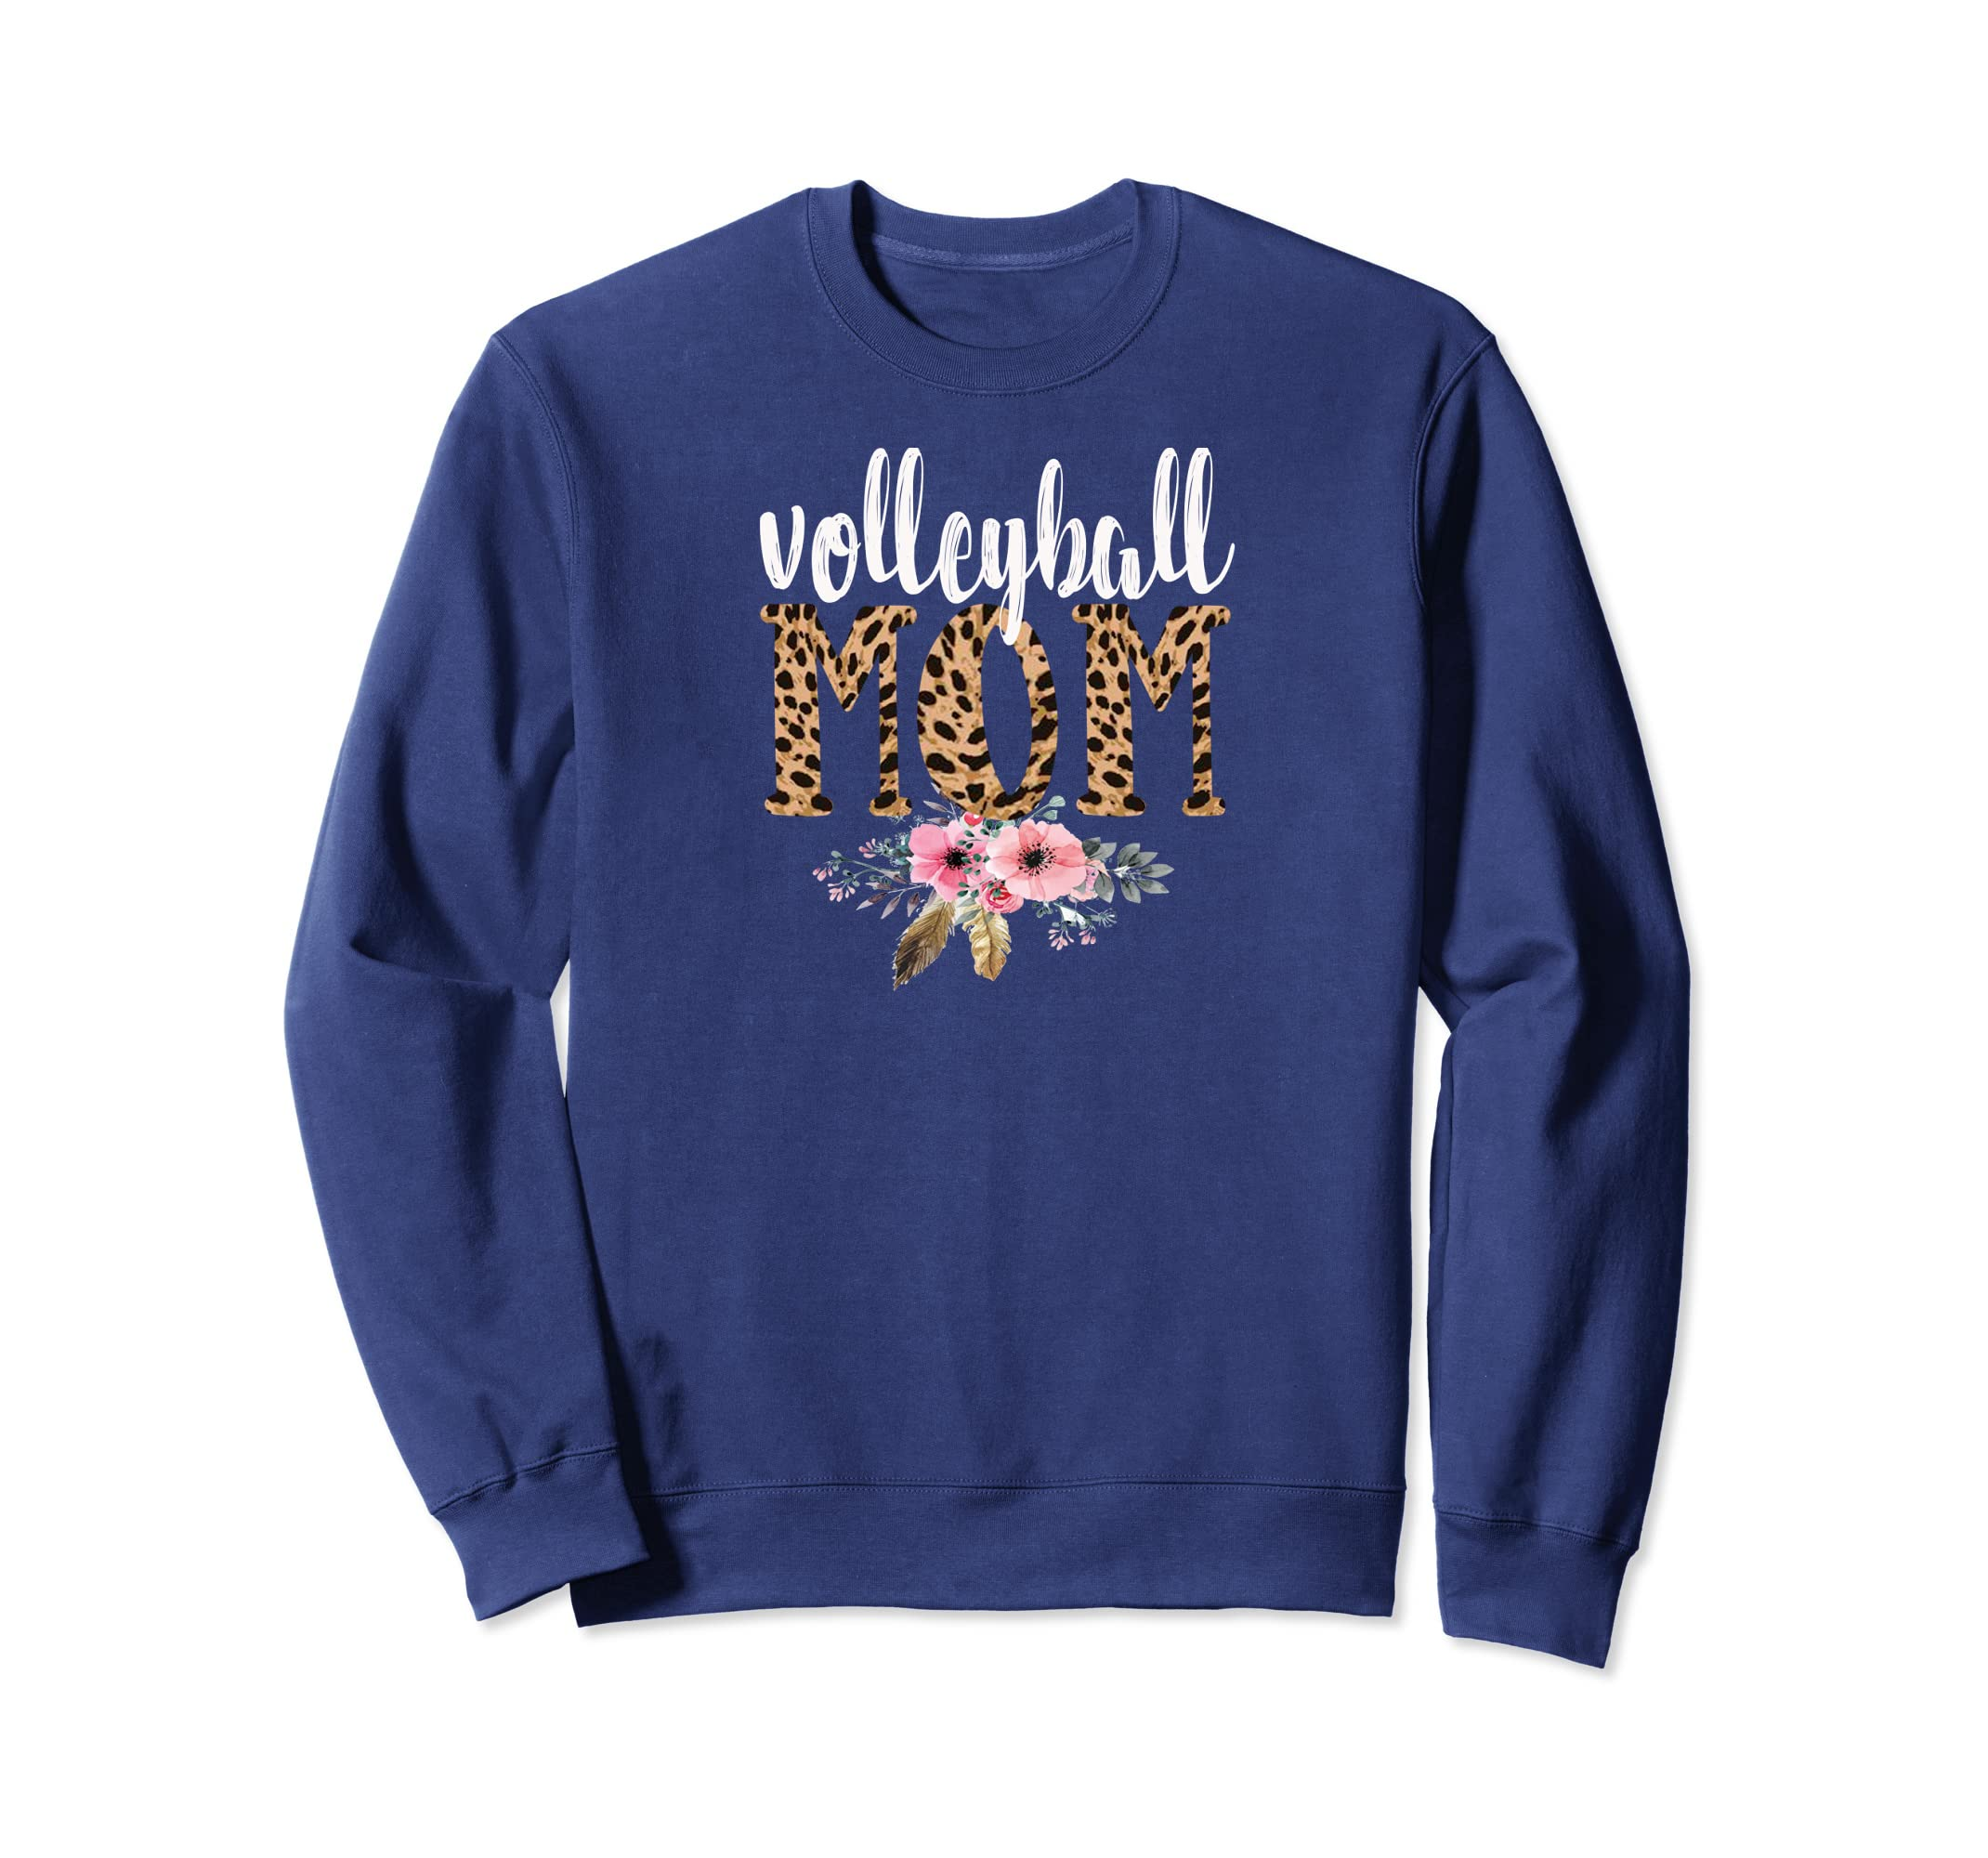 b5b3c3f7e12e Amazon.com: Volleyball Mom to #9 Sweatshirt Boho Leopard T-Shirt: Clothing